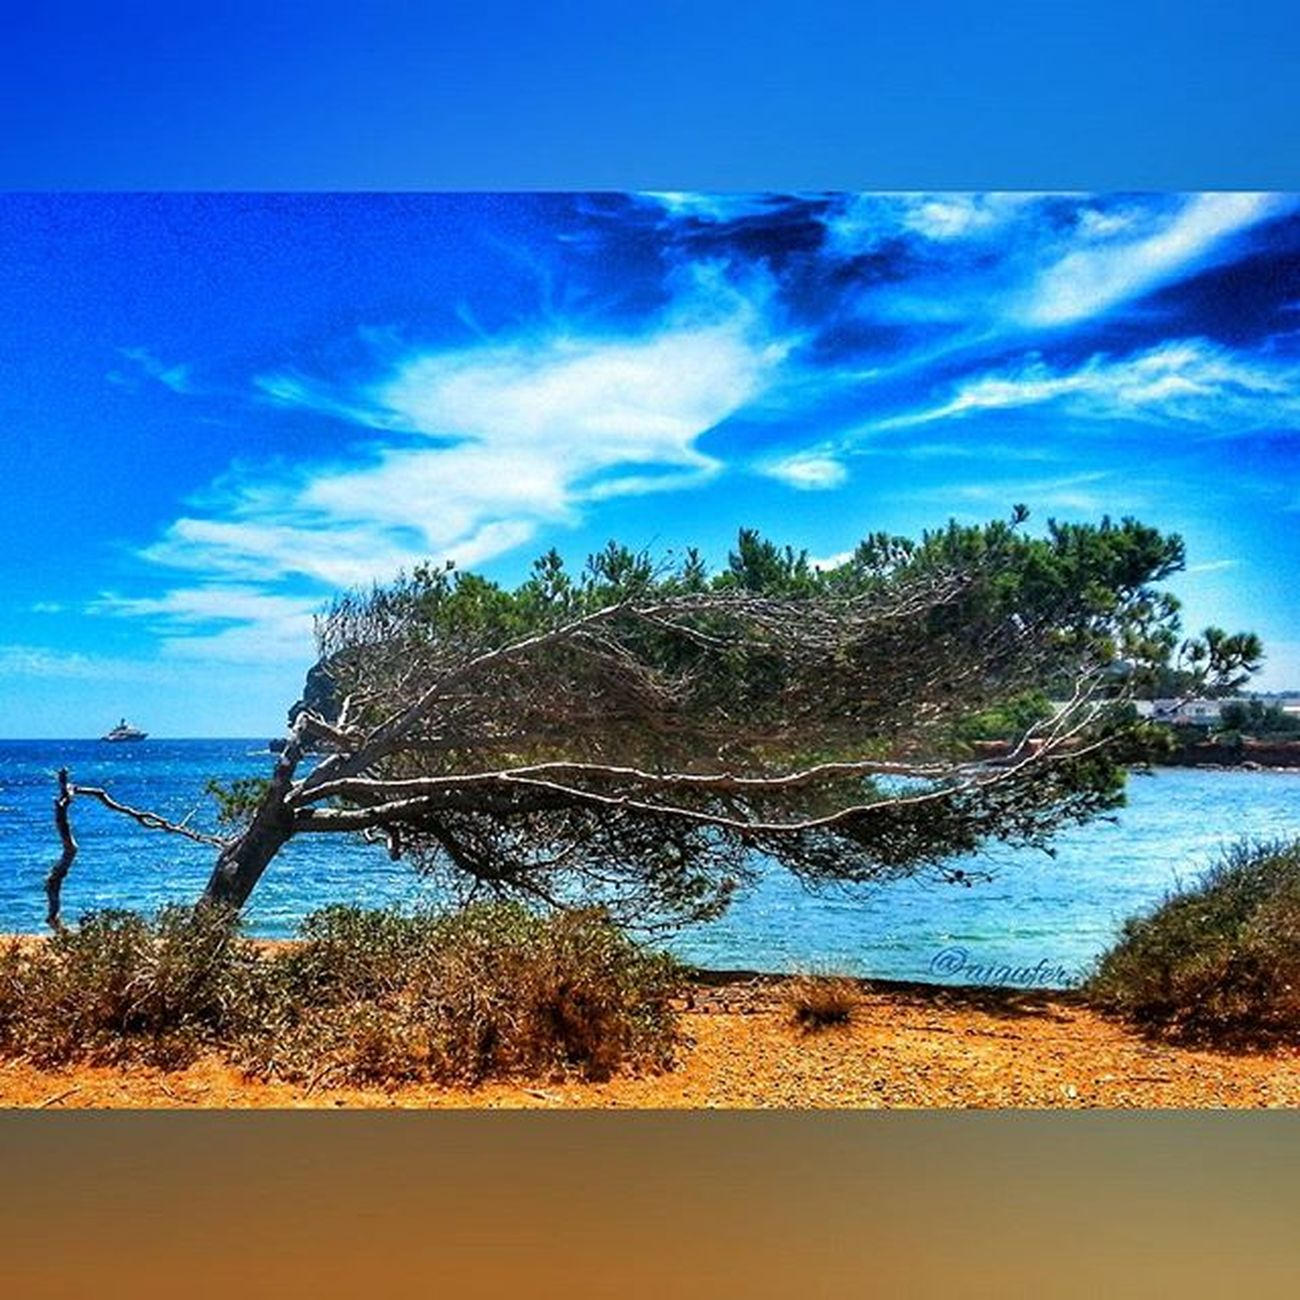 La fuerza del viento Ig_ibiza Instashot Todoclick Pg_mistica_romance Instantes_fotograficos H2o_natura Best2gram Descubriendoigers Estaes_espania Estaes_baleares Ig_great_pics Your_worldcaptures Monumentalspain Great_captures_ Insta_world_free Igphotoworld Ig_fotograf Monolith_spain Clouds Love_natura Sky_sultans Sky_painters Hdr_spain Hdr_professional Be_one_hdr hdr_photogram hdr_lovers total_hdr coolworld_hdr bindebros